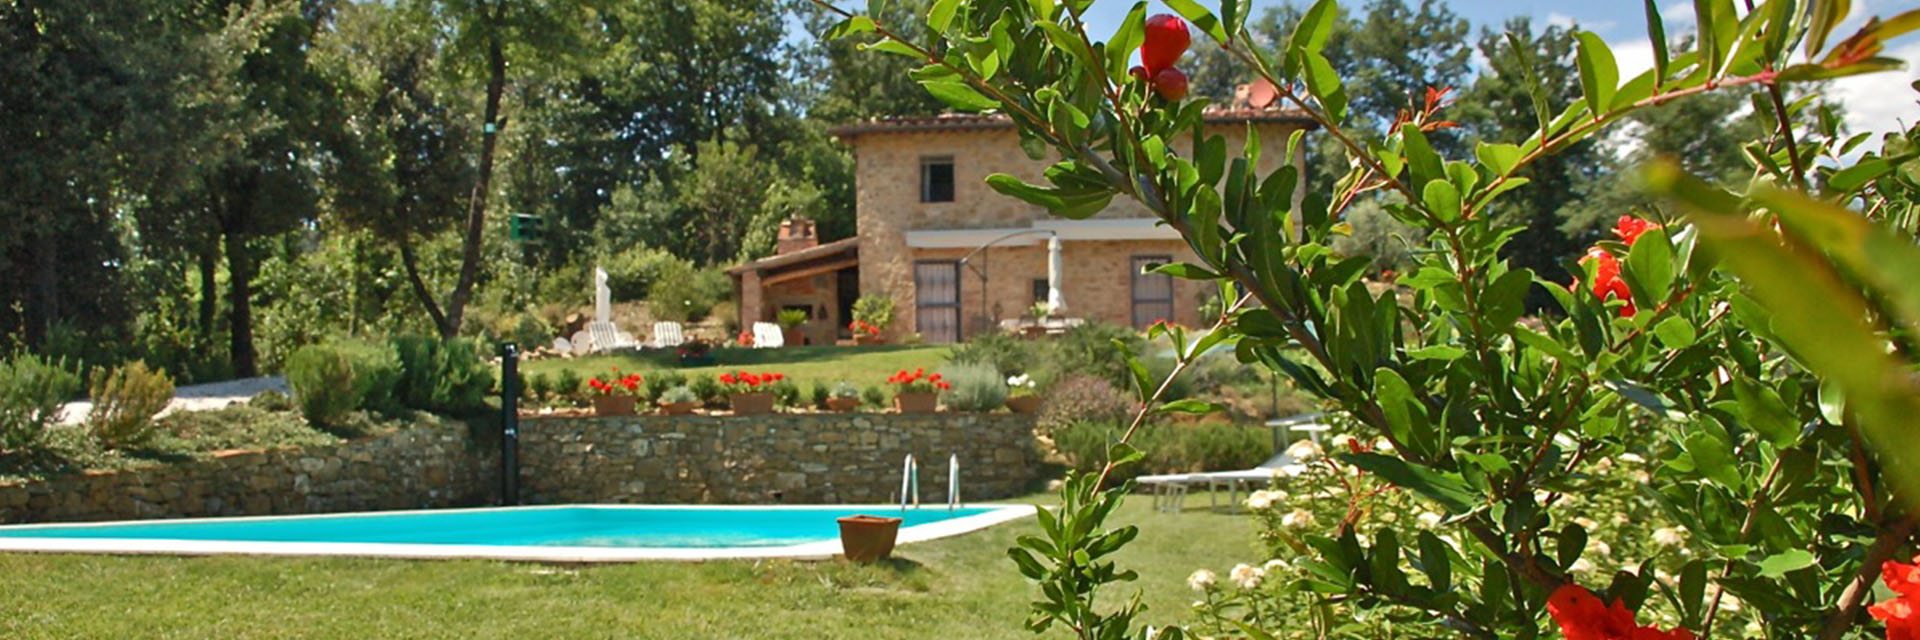 Exclusive Holiday villas to rent in Tuscany